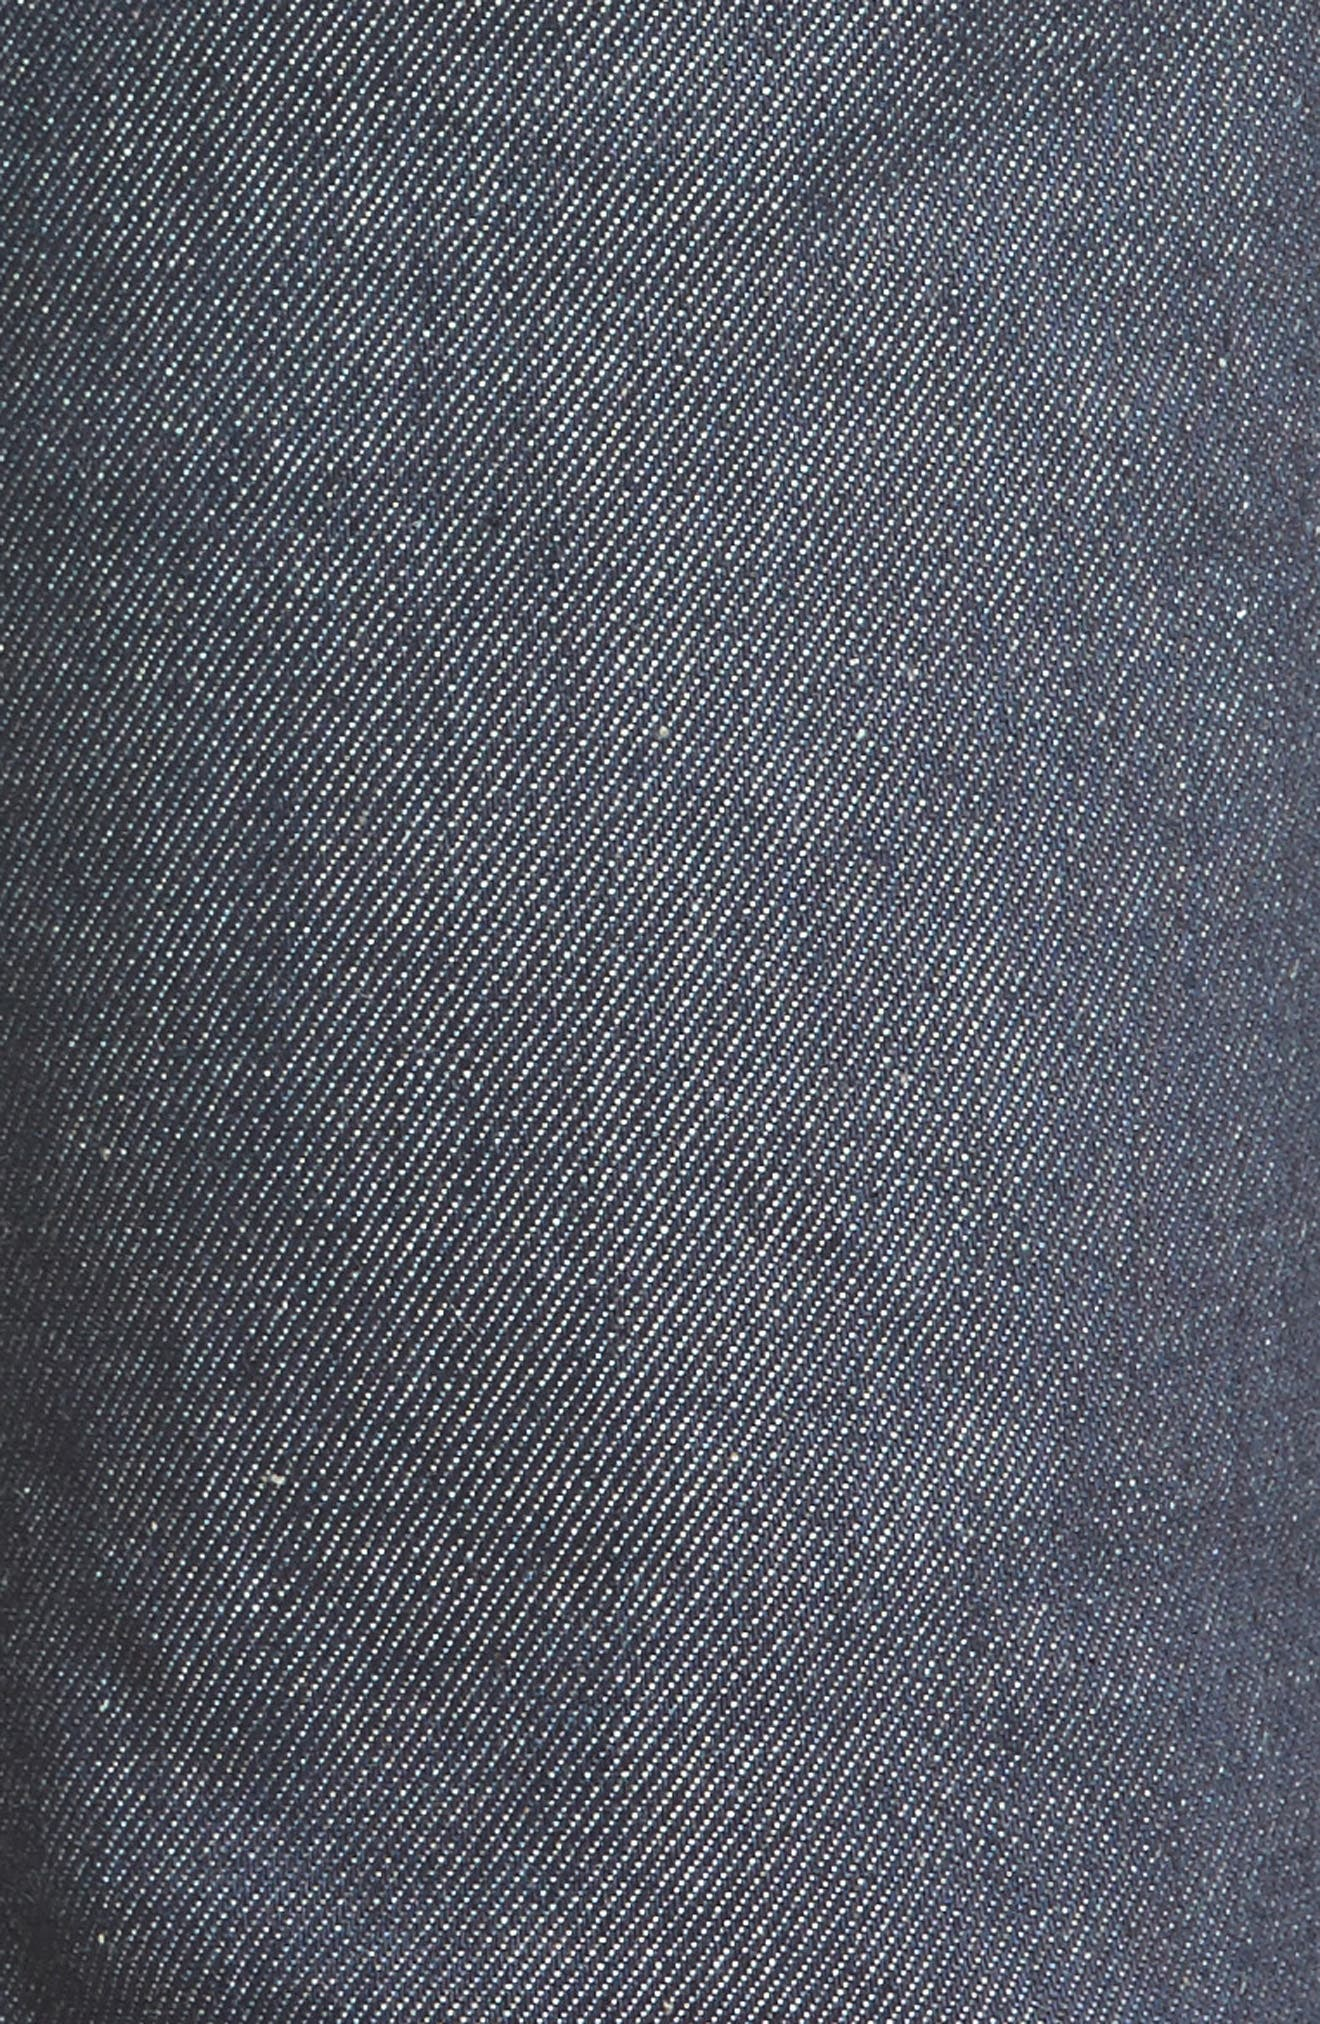 North Skinny Jeans,                             Alternate thumbnail 5, color,                             Indigo